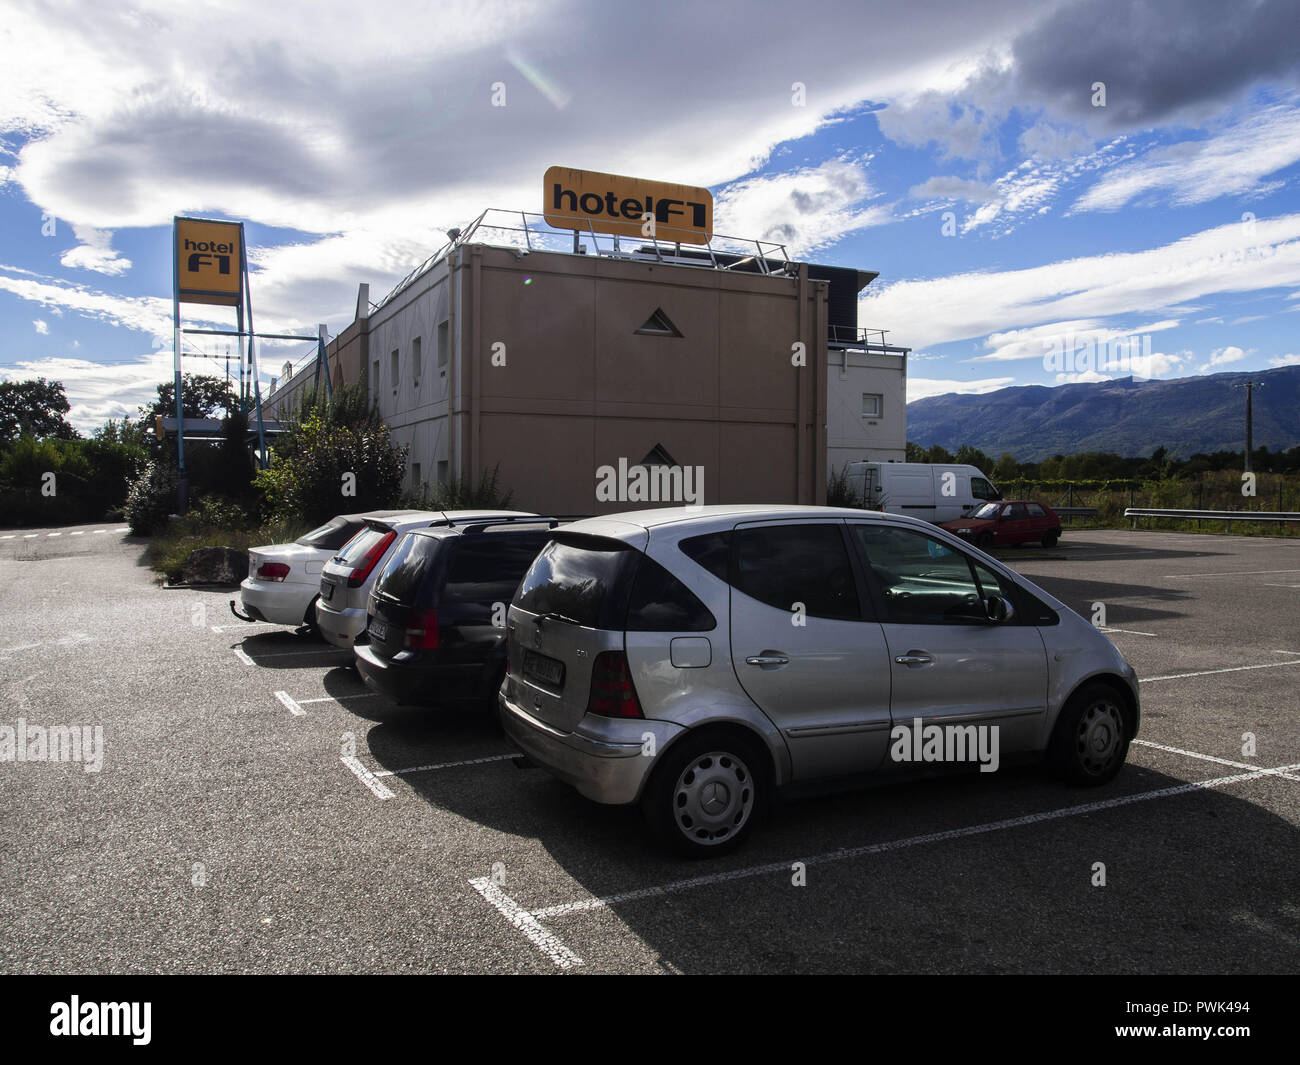 September 22, 2018 - Ferney-Voltaire, France - Hotel F1. Hotel Formule 1, or hotelF1 in France, is an international chain of ''super low budget'' or ''no frills'' hotels owned by AccorHotels. Credit: Igor Golovniov/SOPA Images/ZUMA Wire/Alamy Live News - Stock Image